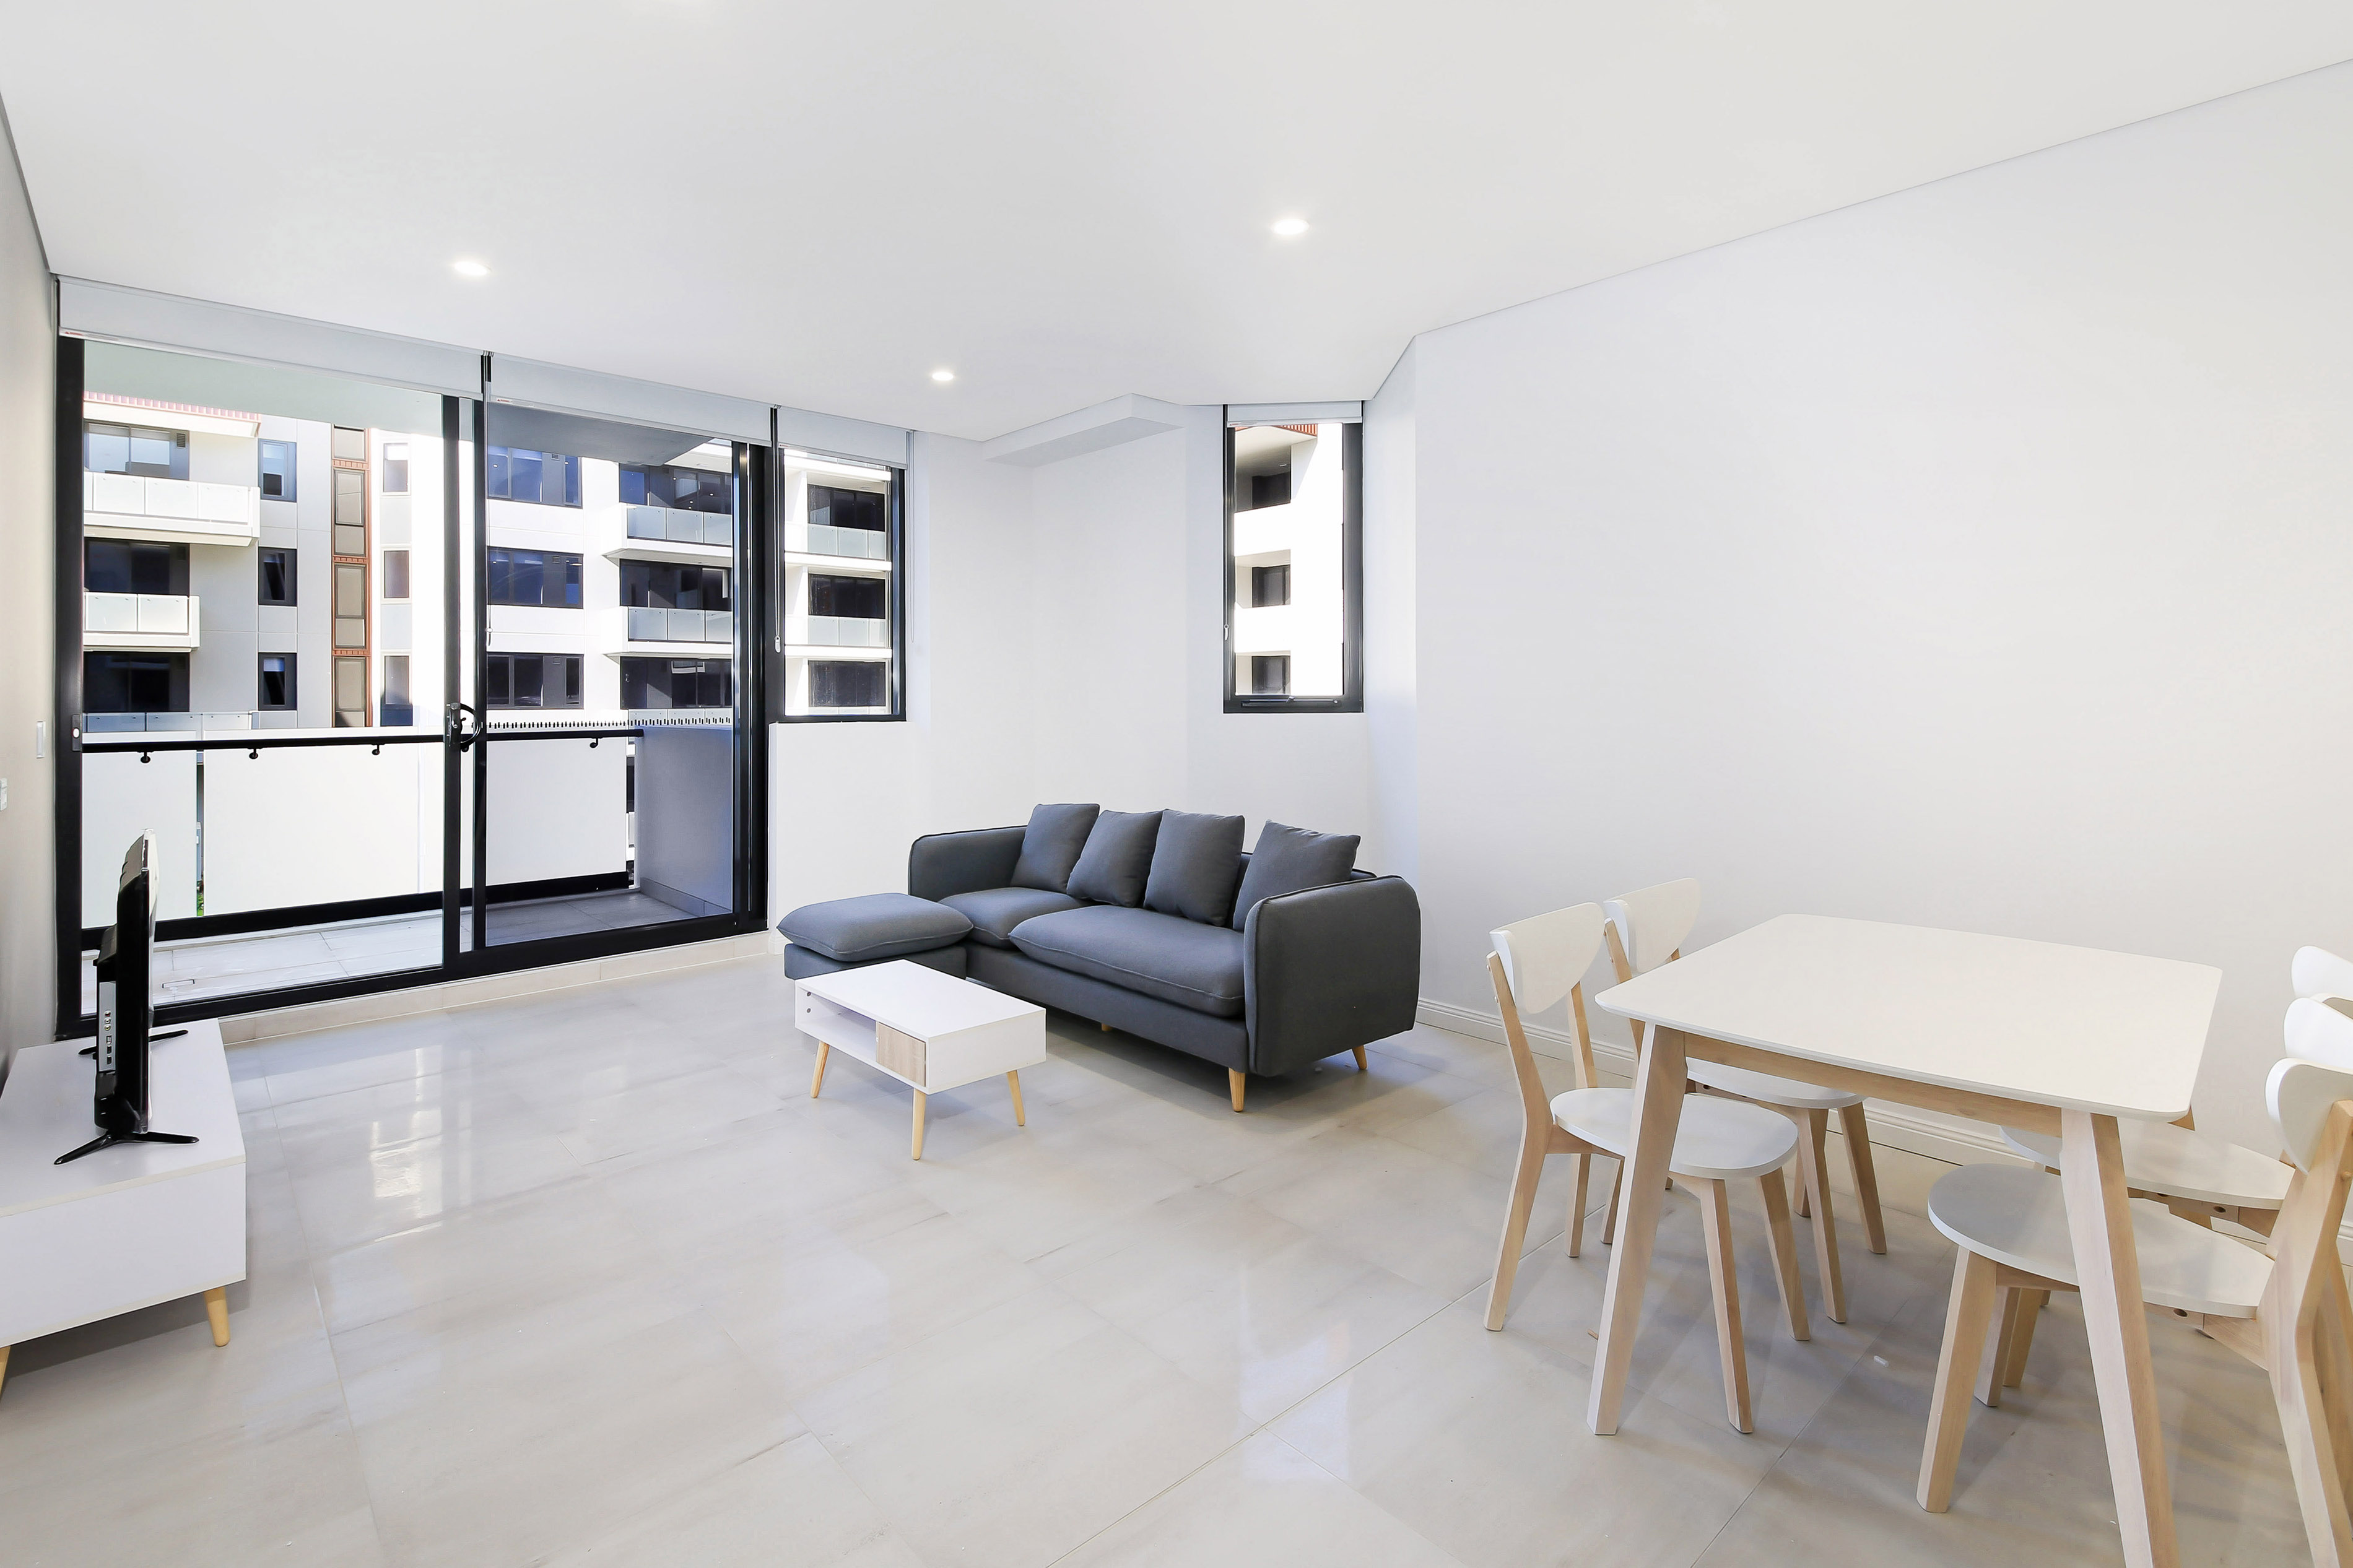 203 / 5 Confectioners Way, Rosebery